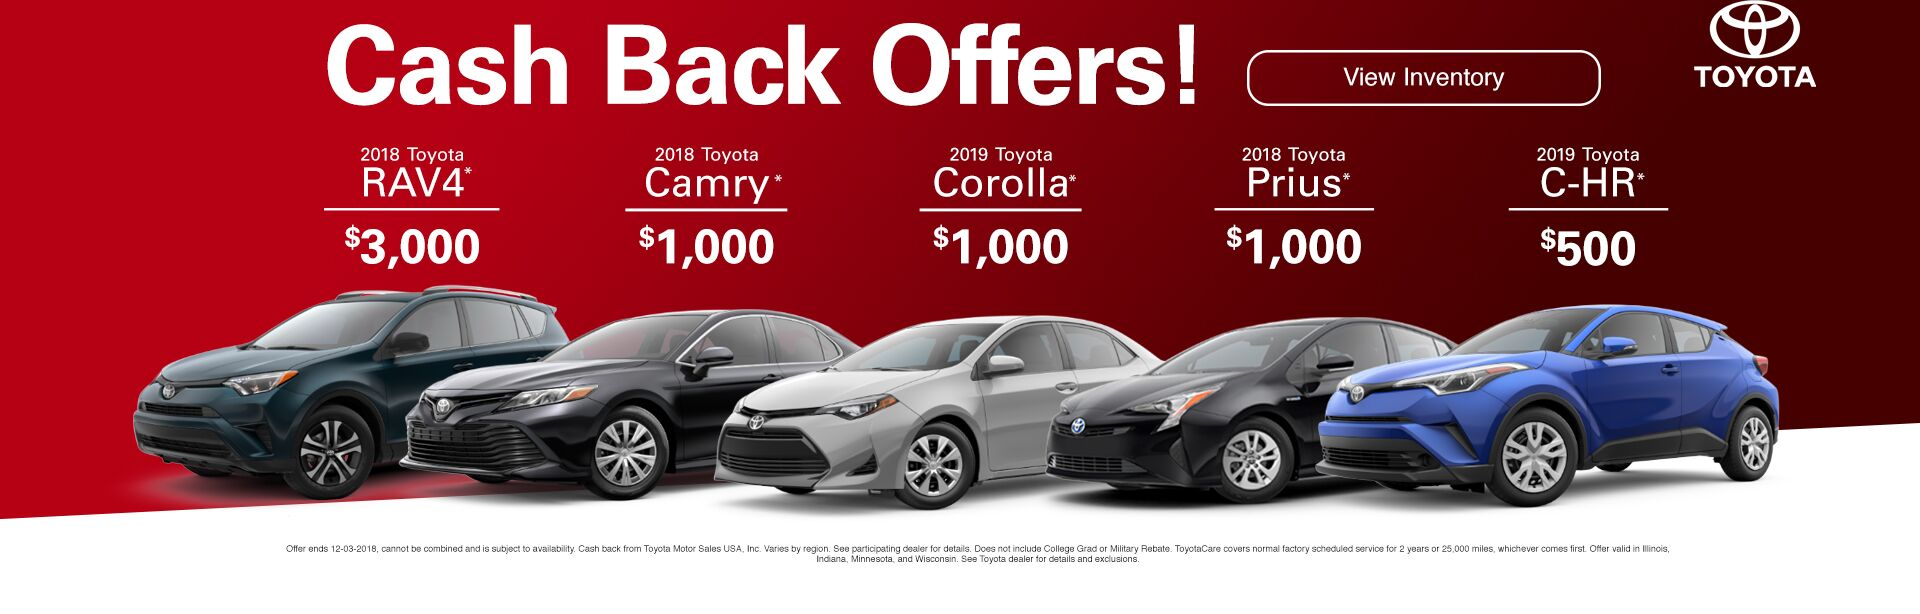 Cash Back Offers